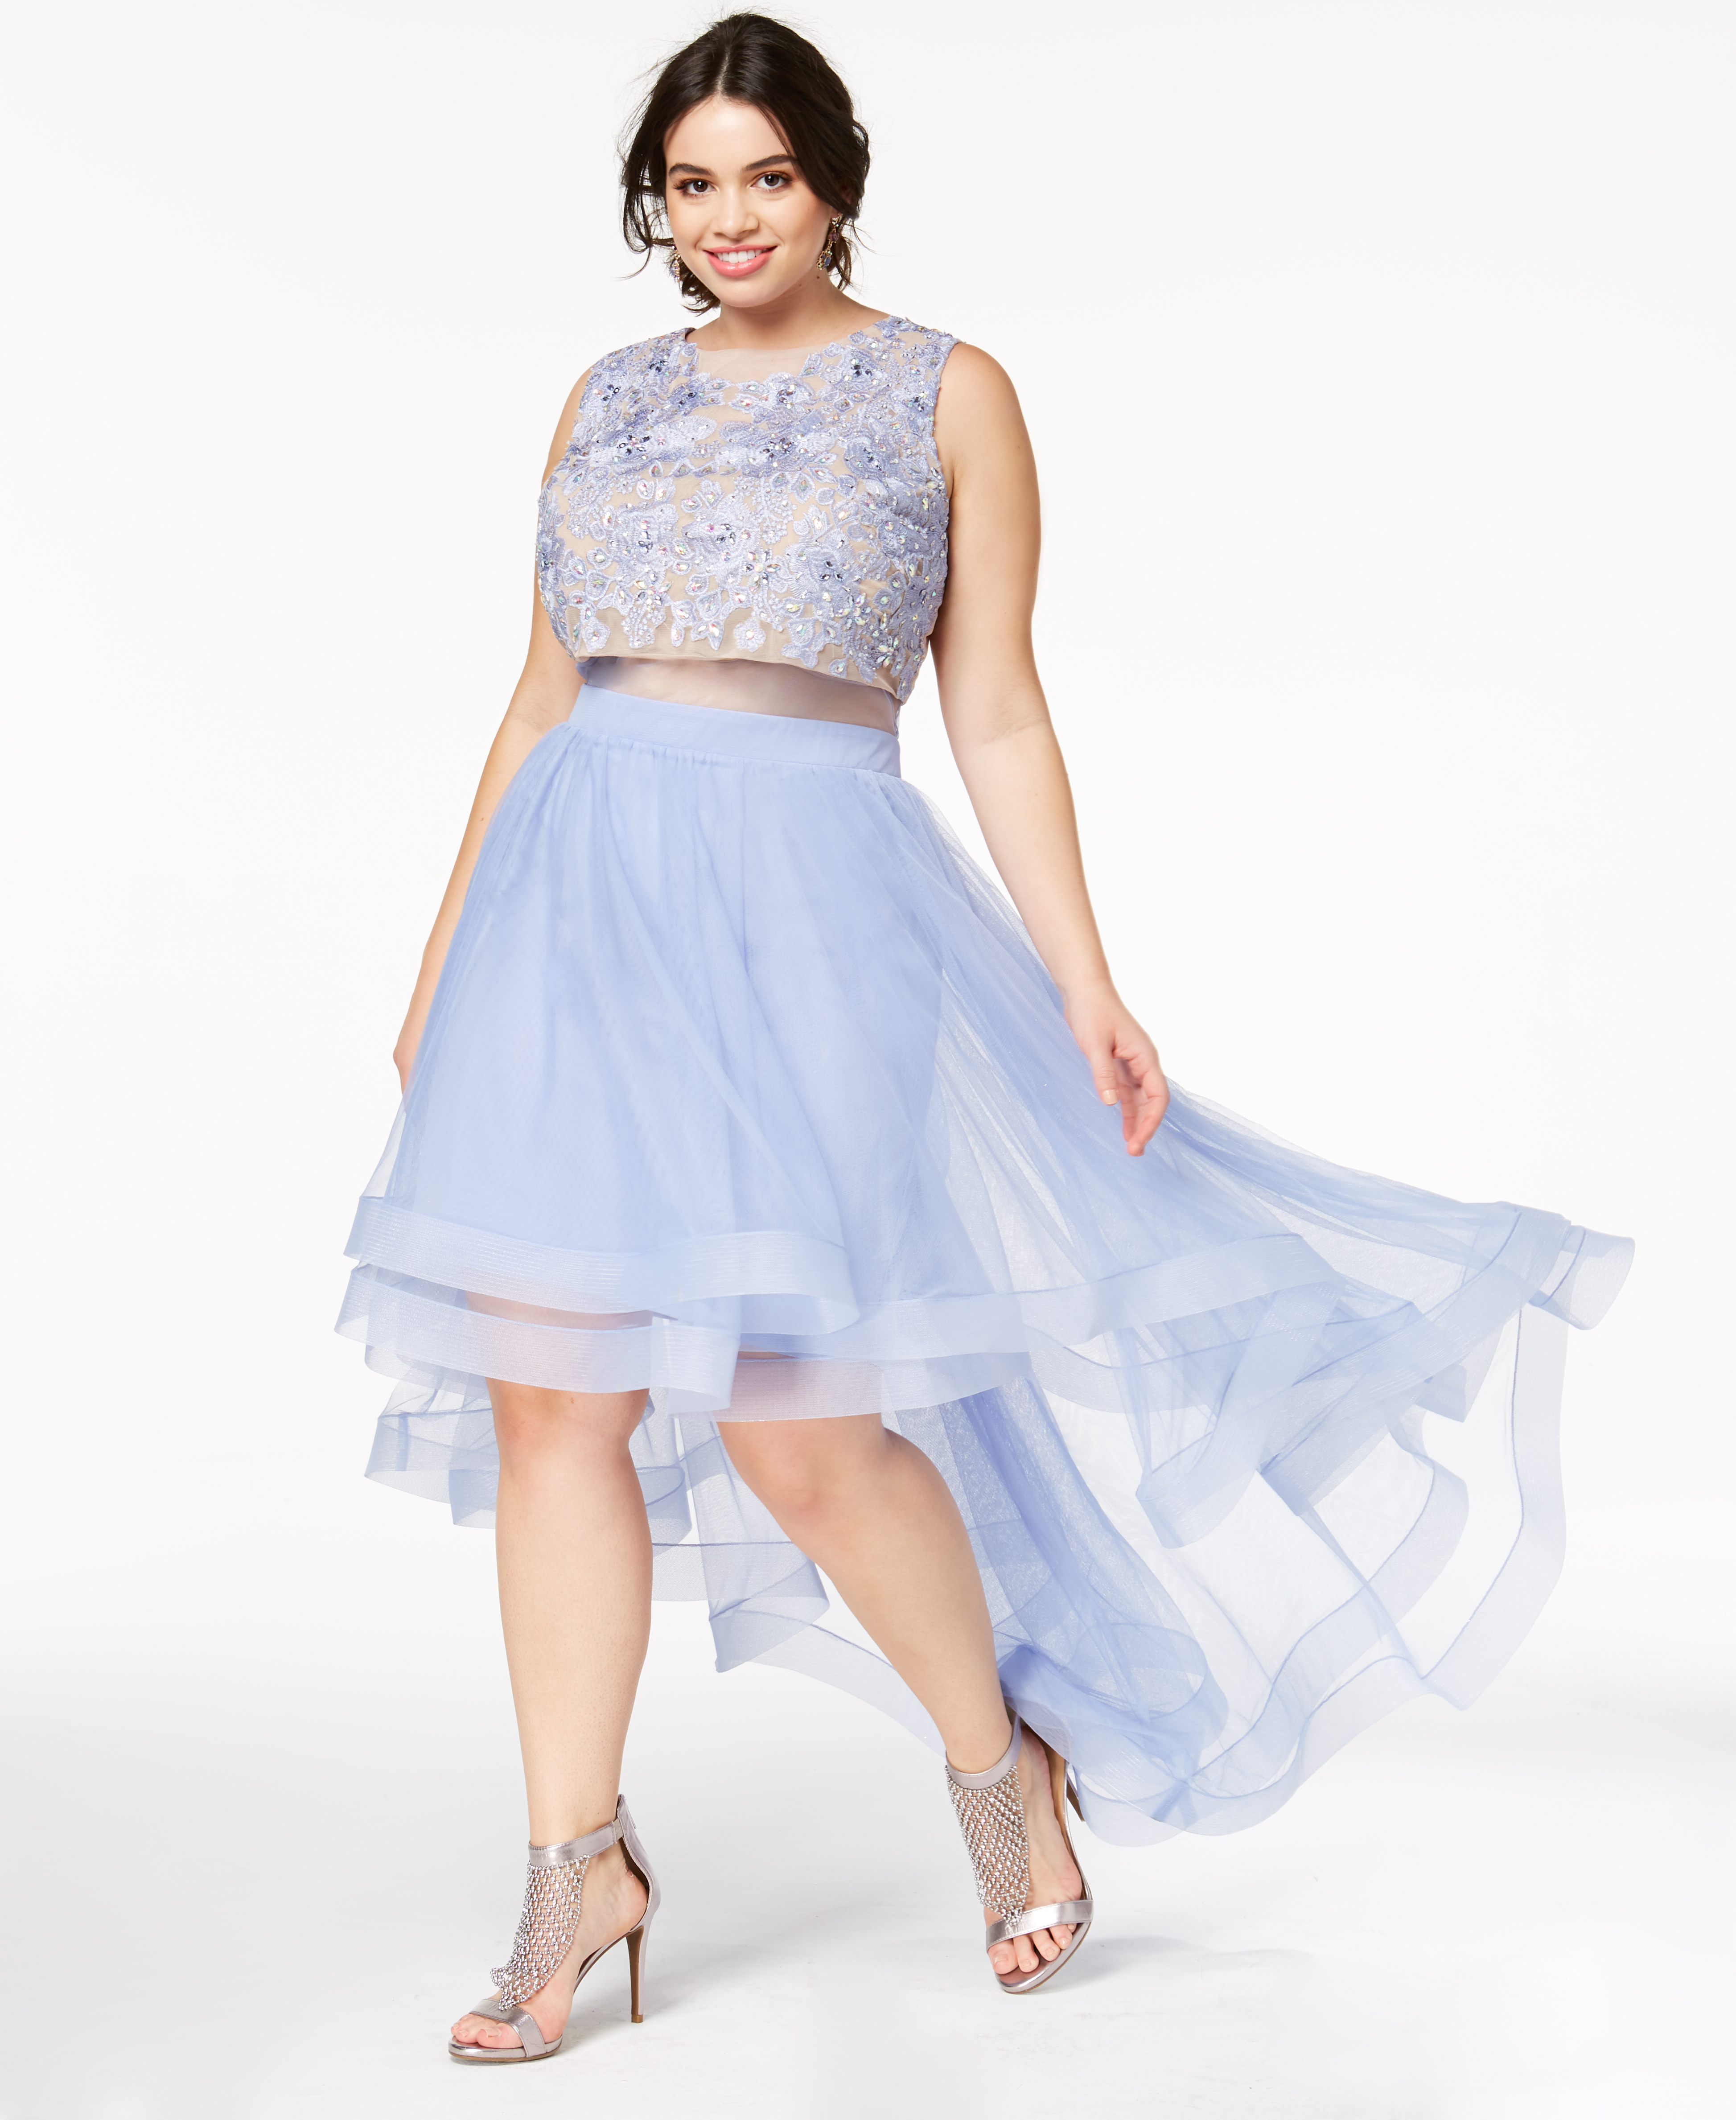 6d4490b8fc8 Shine Bright At Prom With Fashion From Macy s